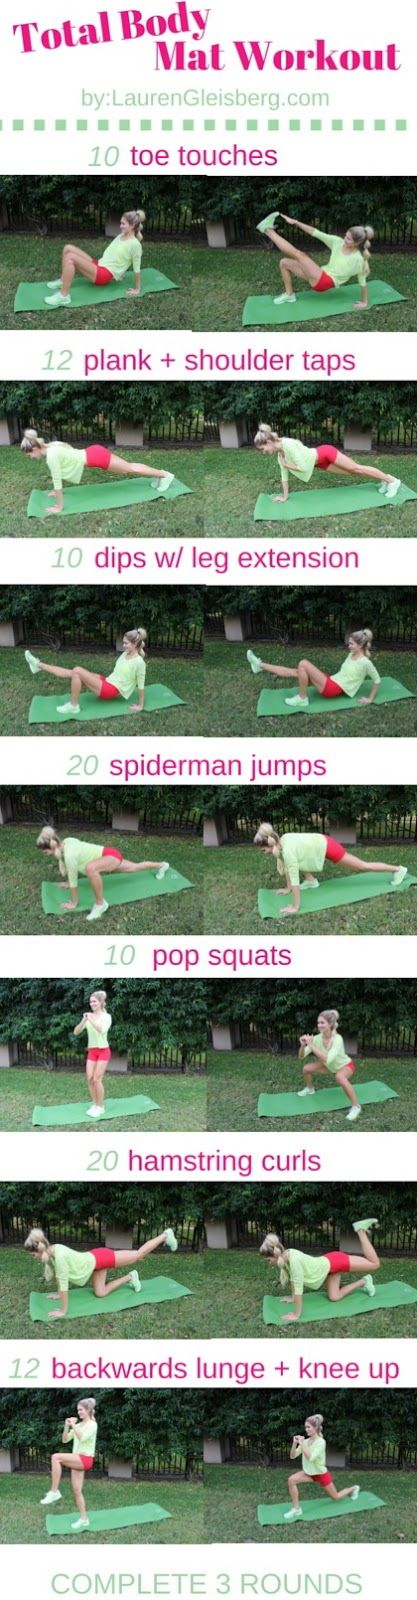 Total Body Home Workout by LaurenGleisberg.com   click image for the 12 week home workout plan